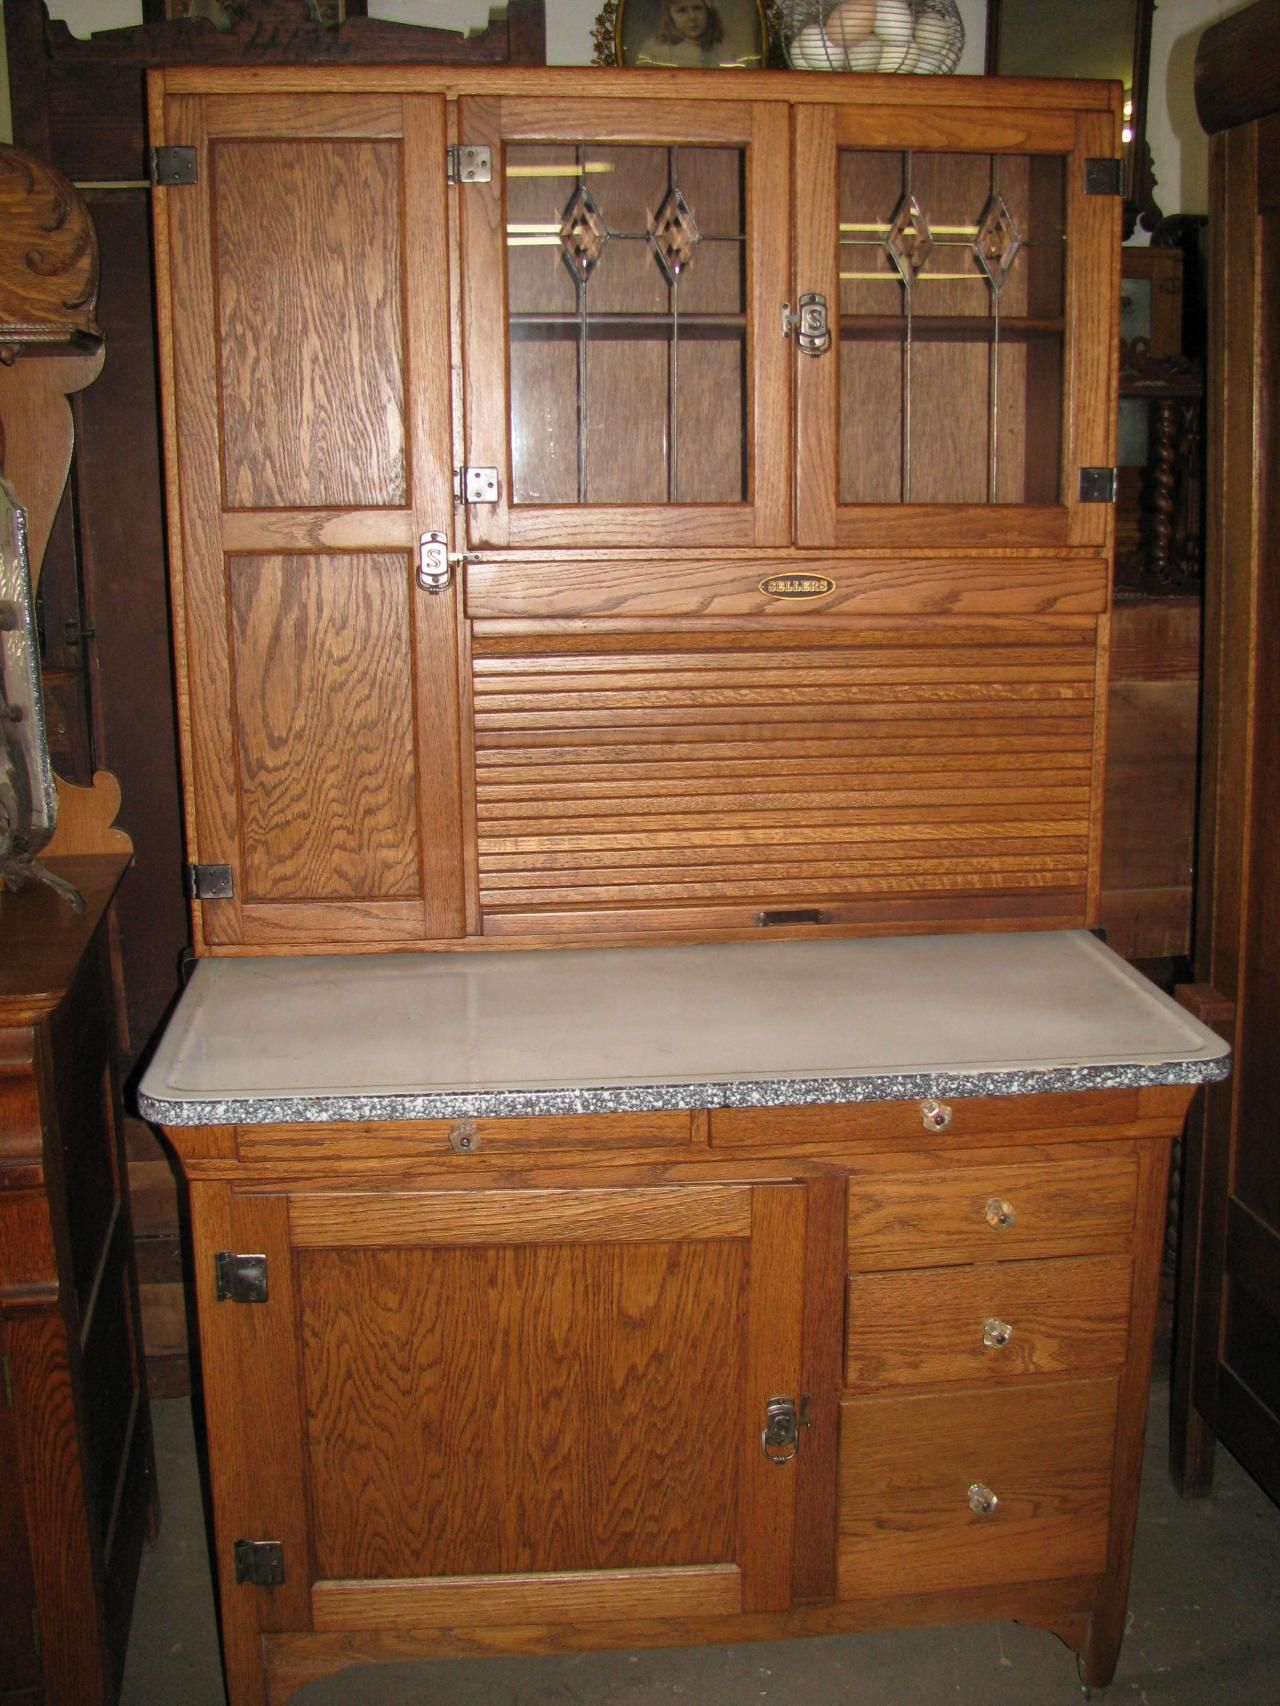 Perfect Sellers Kitchen/Bakers Cabinet Circa 1917 1920 W/ Leaded Glass Windows W/